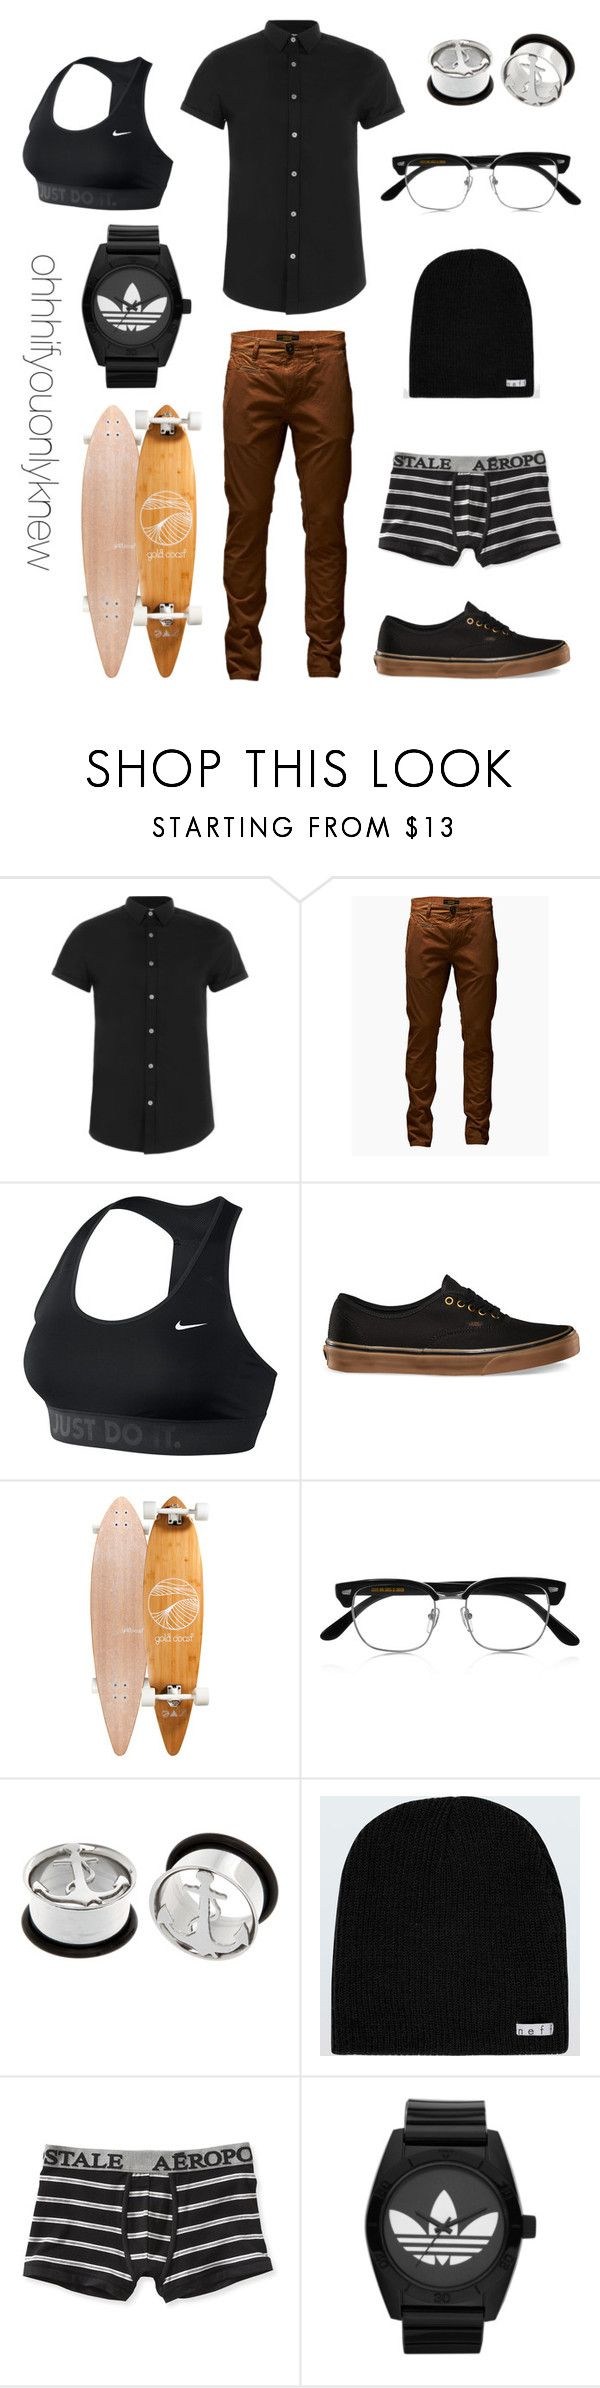 """Untitled #223"" by ohhhifyouonlyknew ❤ liked on Polyvore featuring Topman, Jack & Jones, NIKE, GoldCoast, Cutler and Gross, Neff, Aéropostale and adidas Originals"